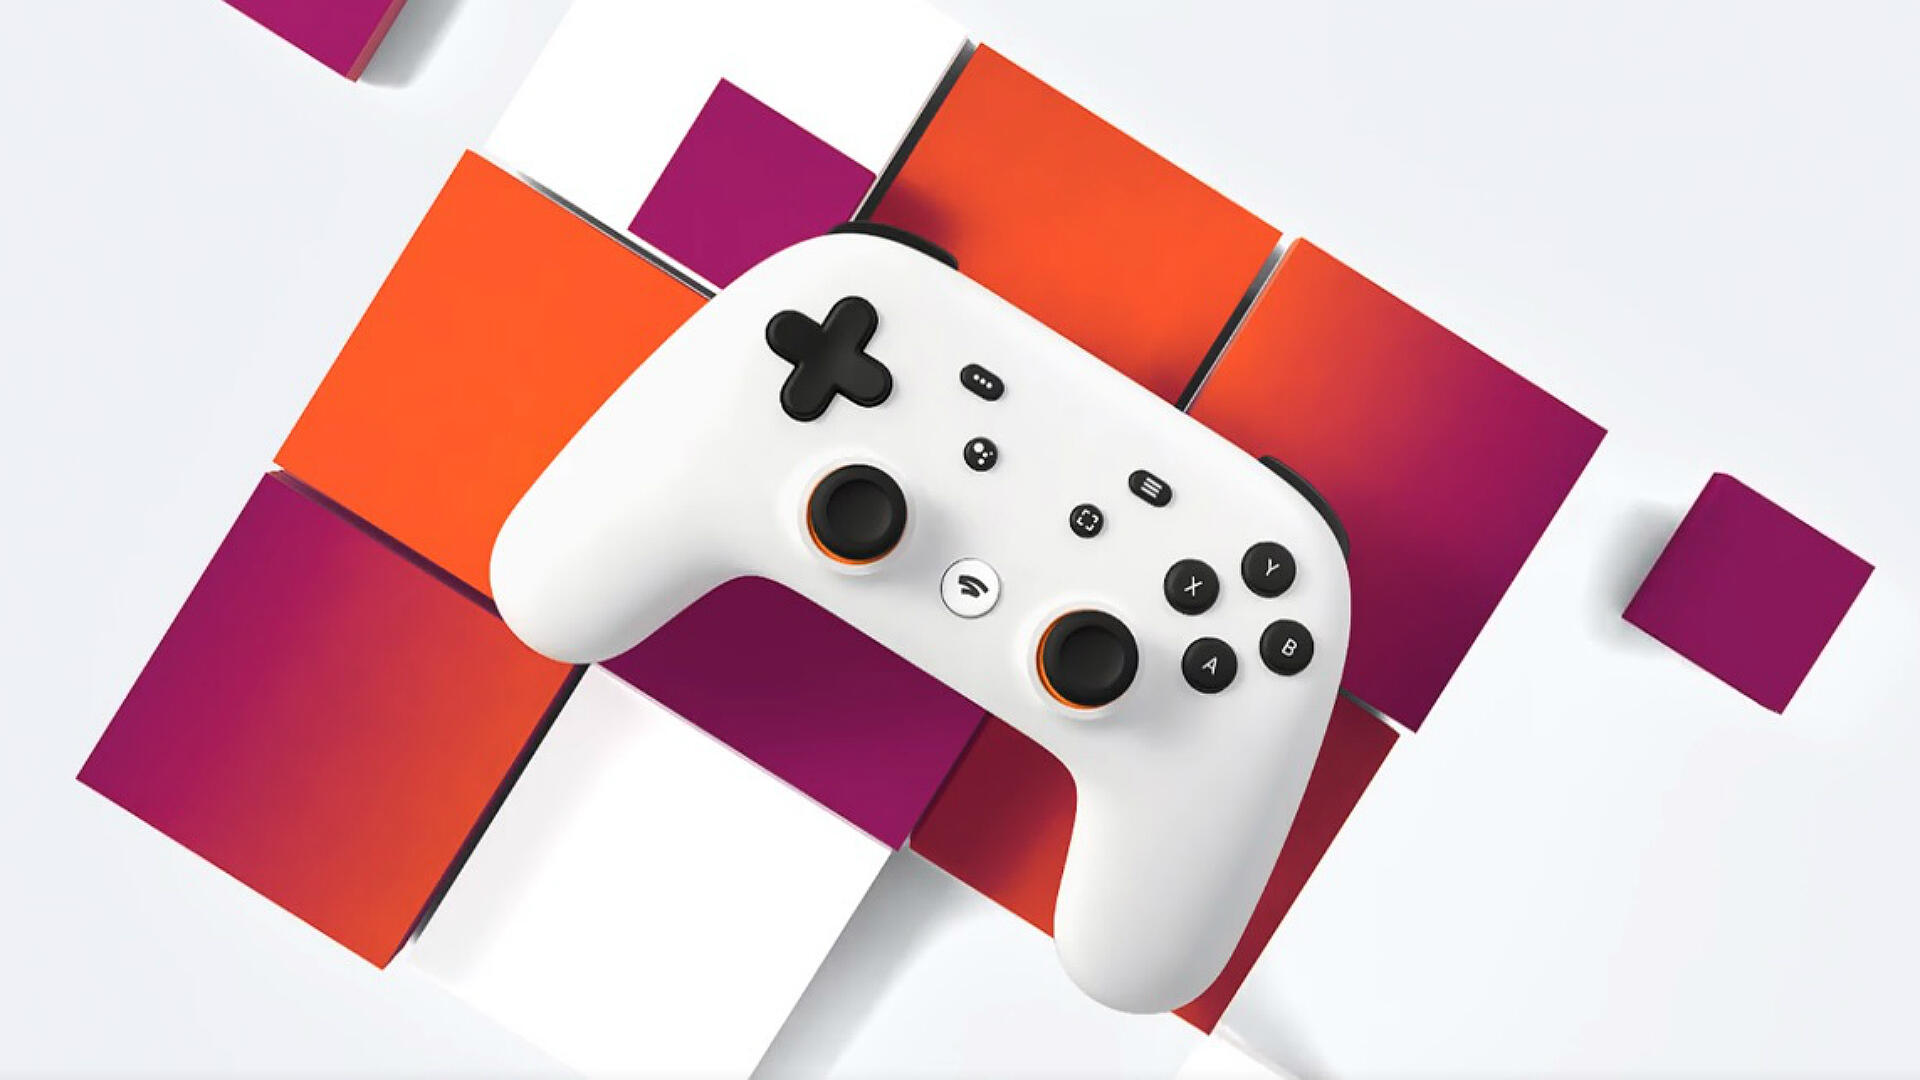 Gamers React to Google Stadia, Worry About Internet Connections and Data Caps